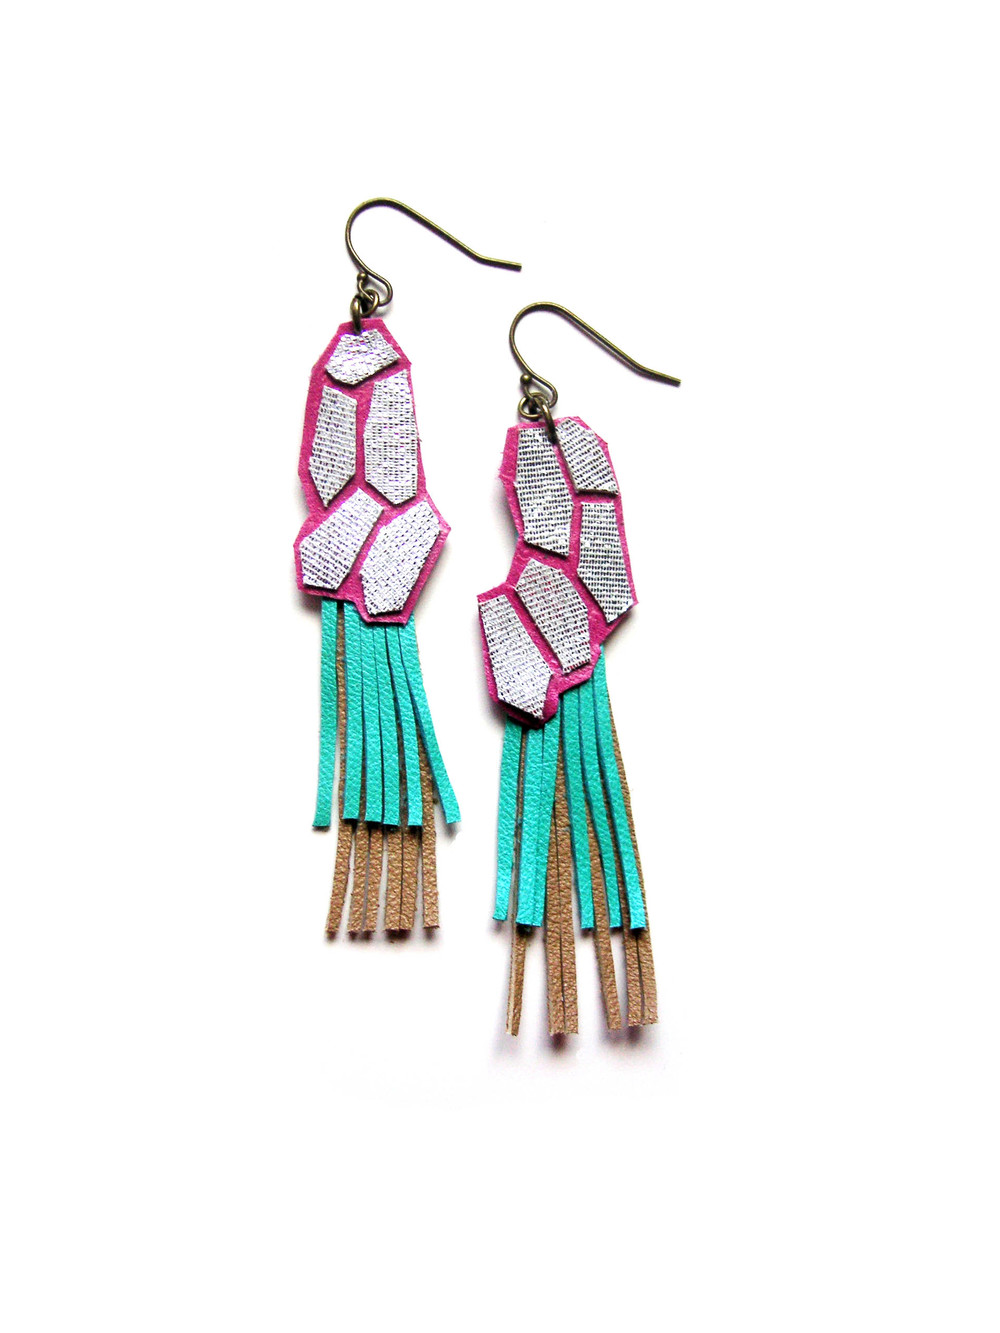 Geometric Leather Earrings Fucshia Teal and Silver 3.jpg